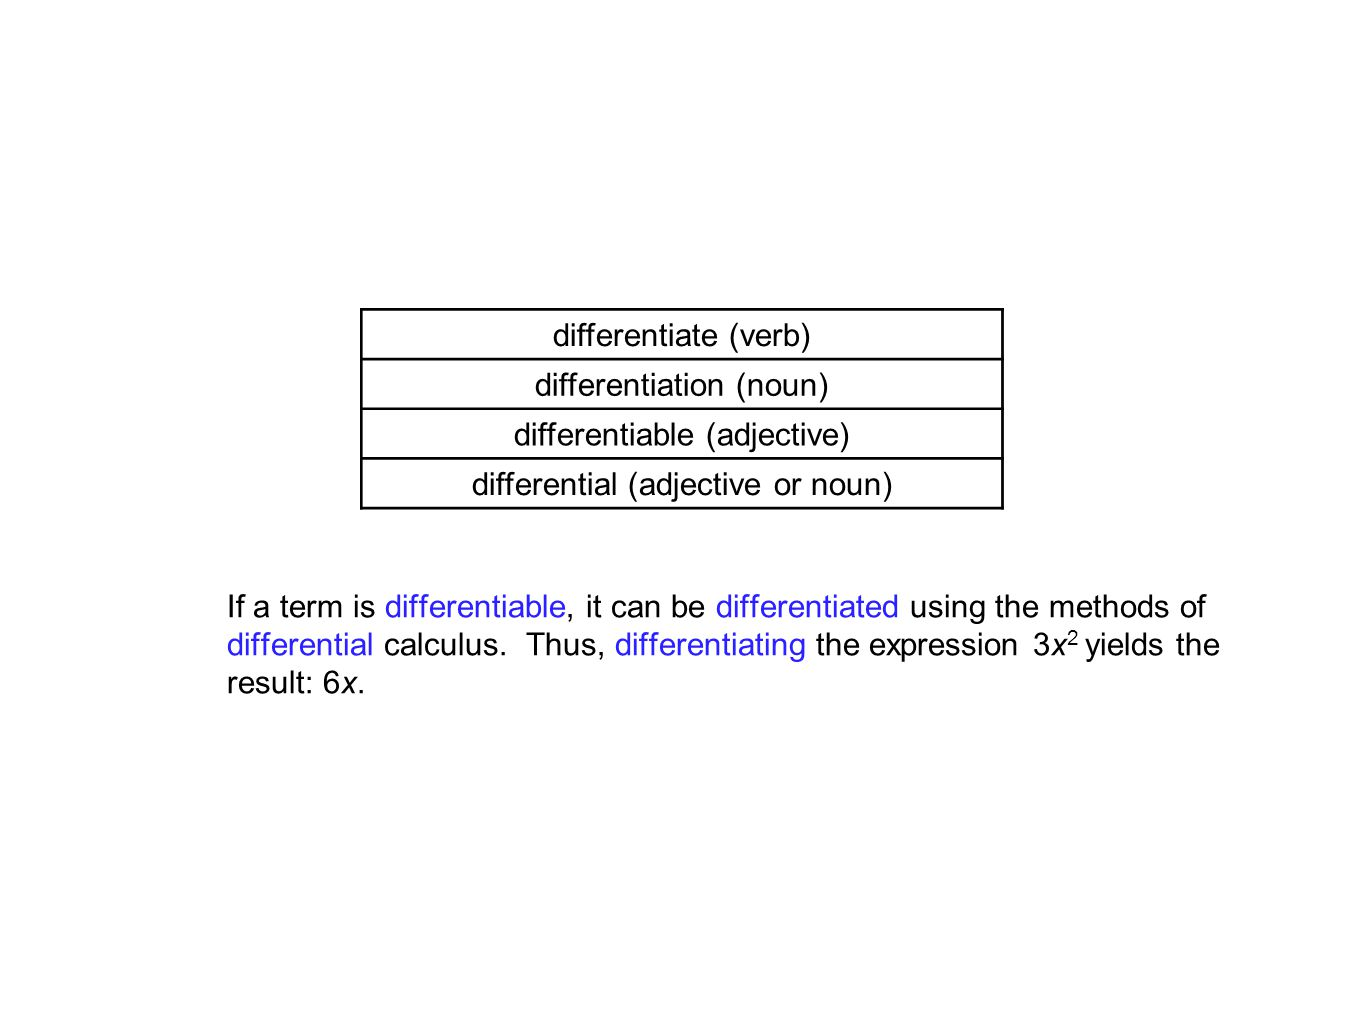 If a term is differentiable, it can be differentiated using the methods of differential calculus.